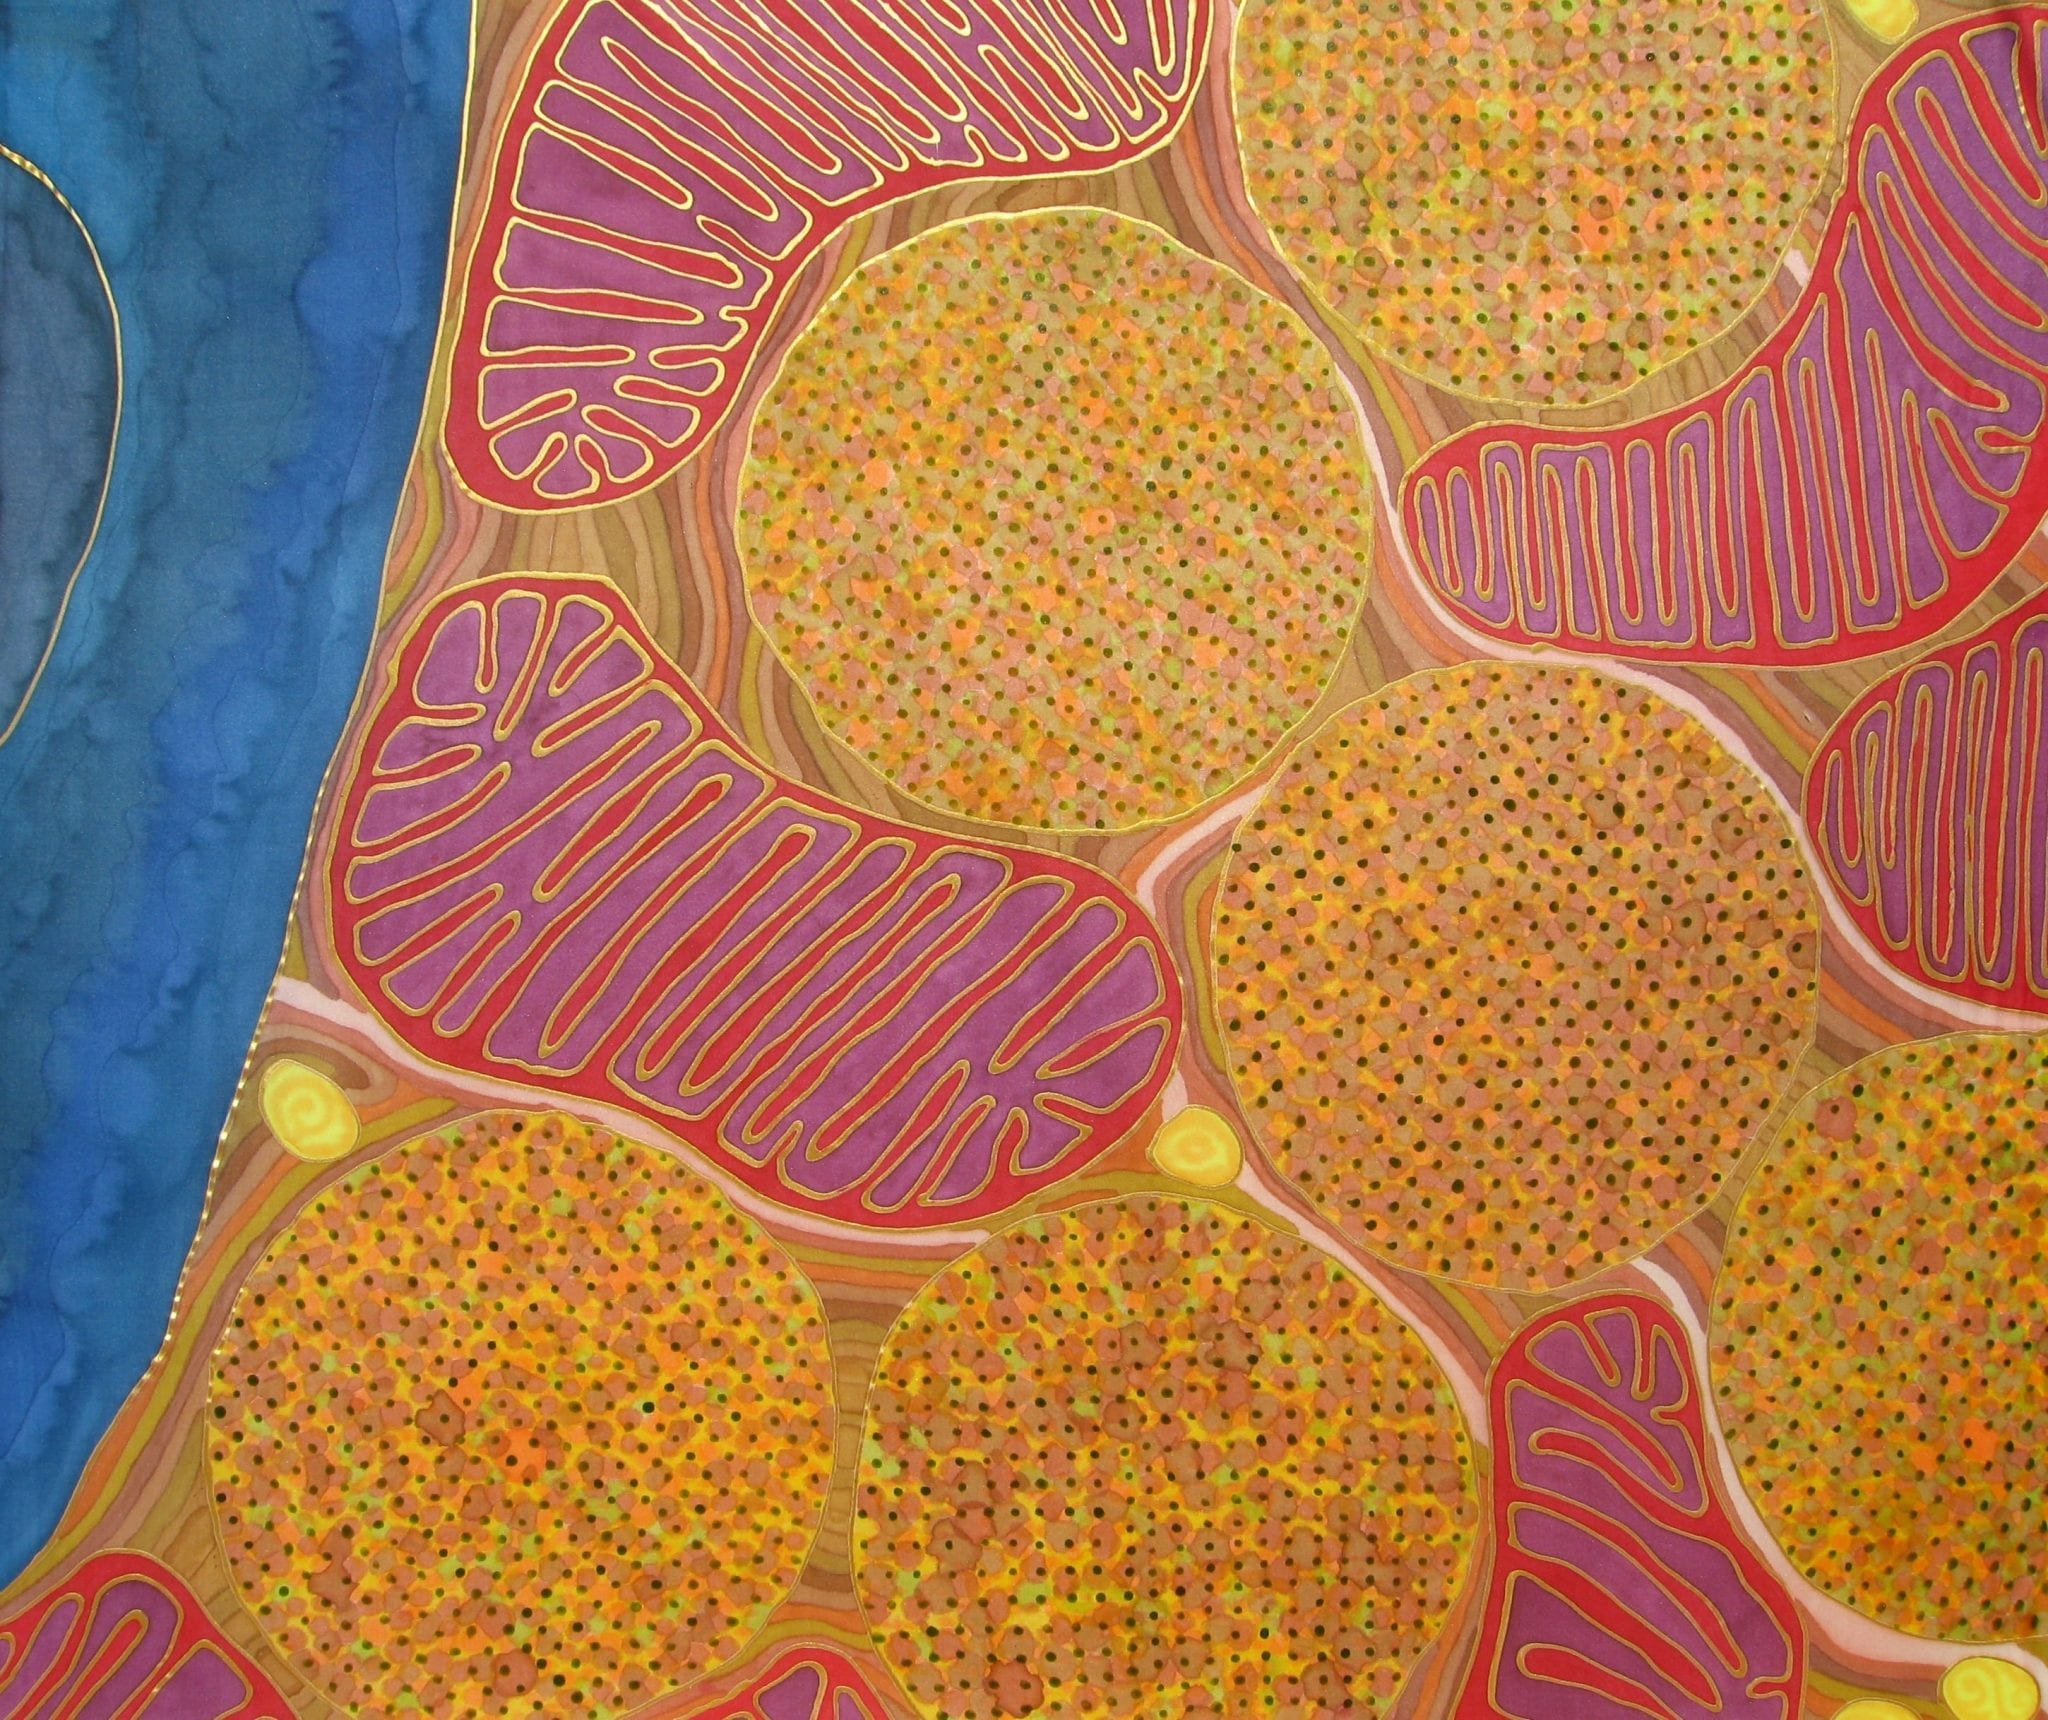 Flight Muscle Mitochondria by Odra Noel